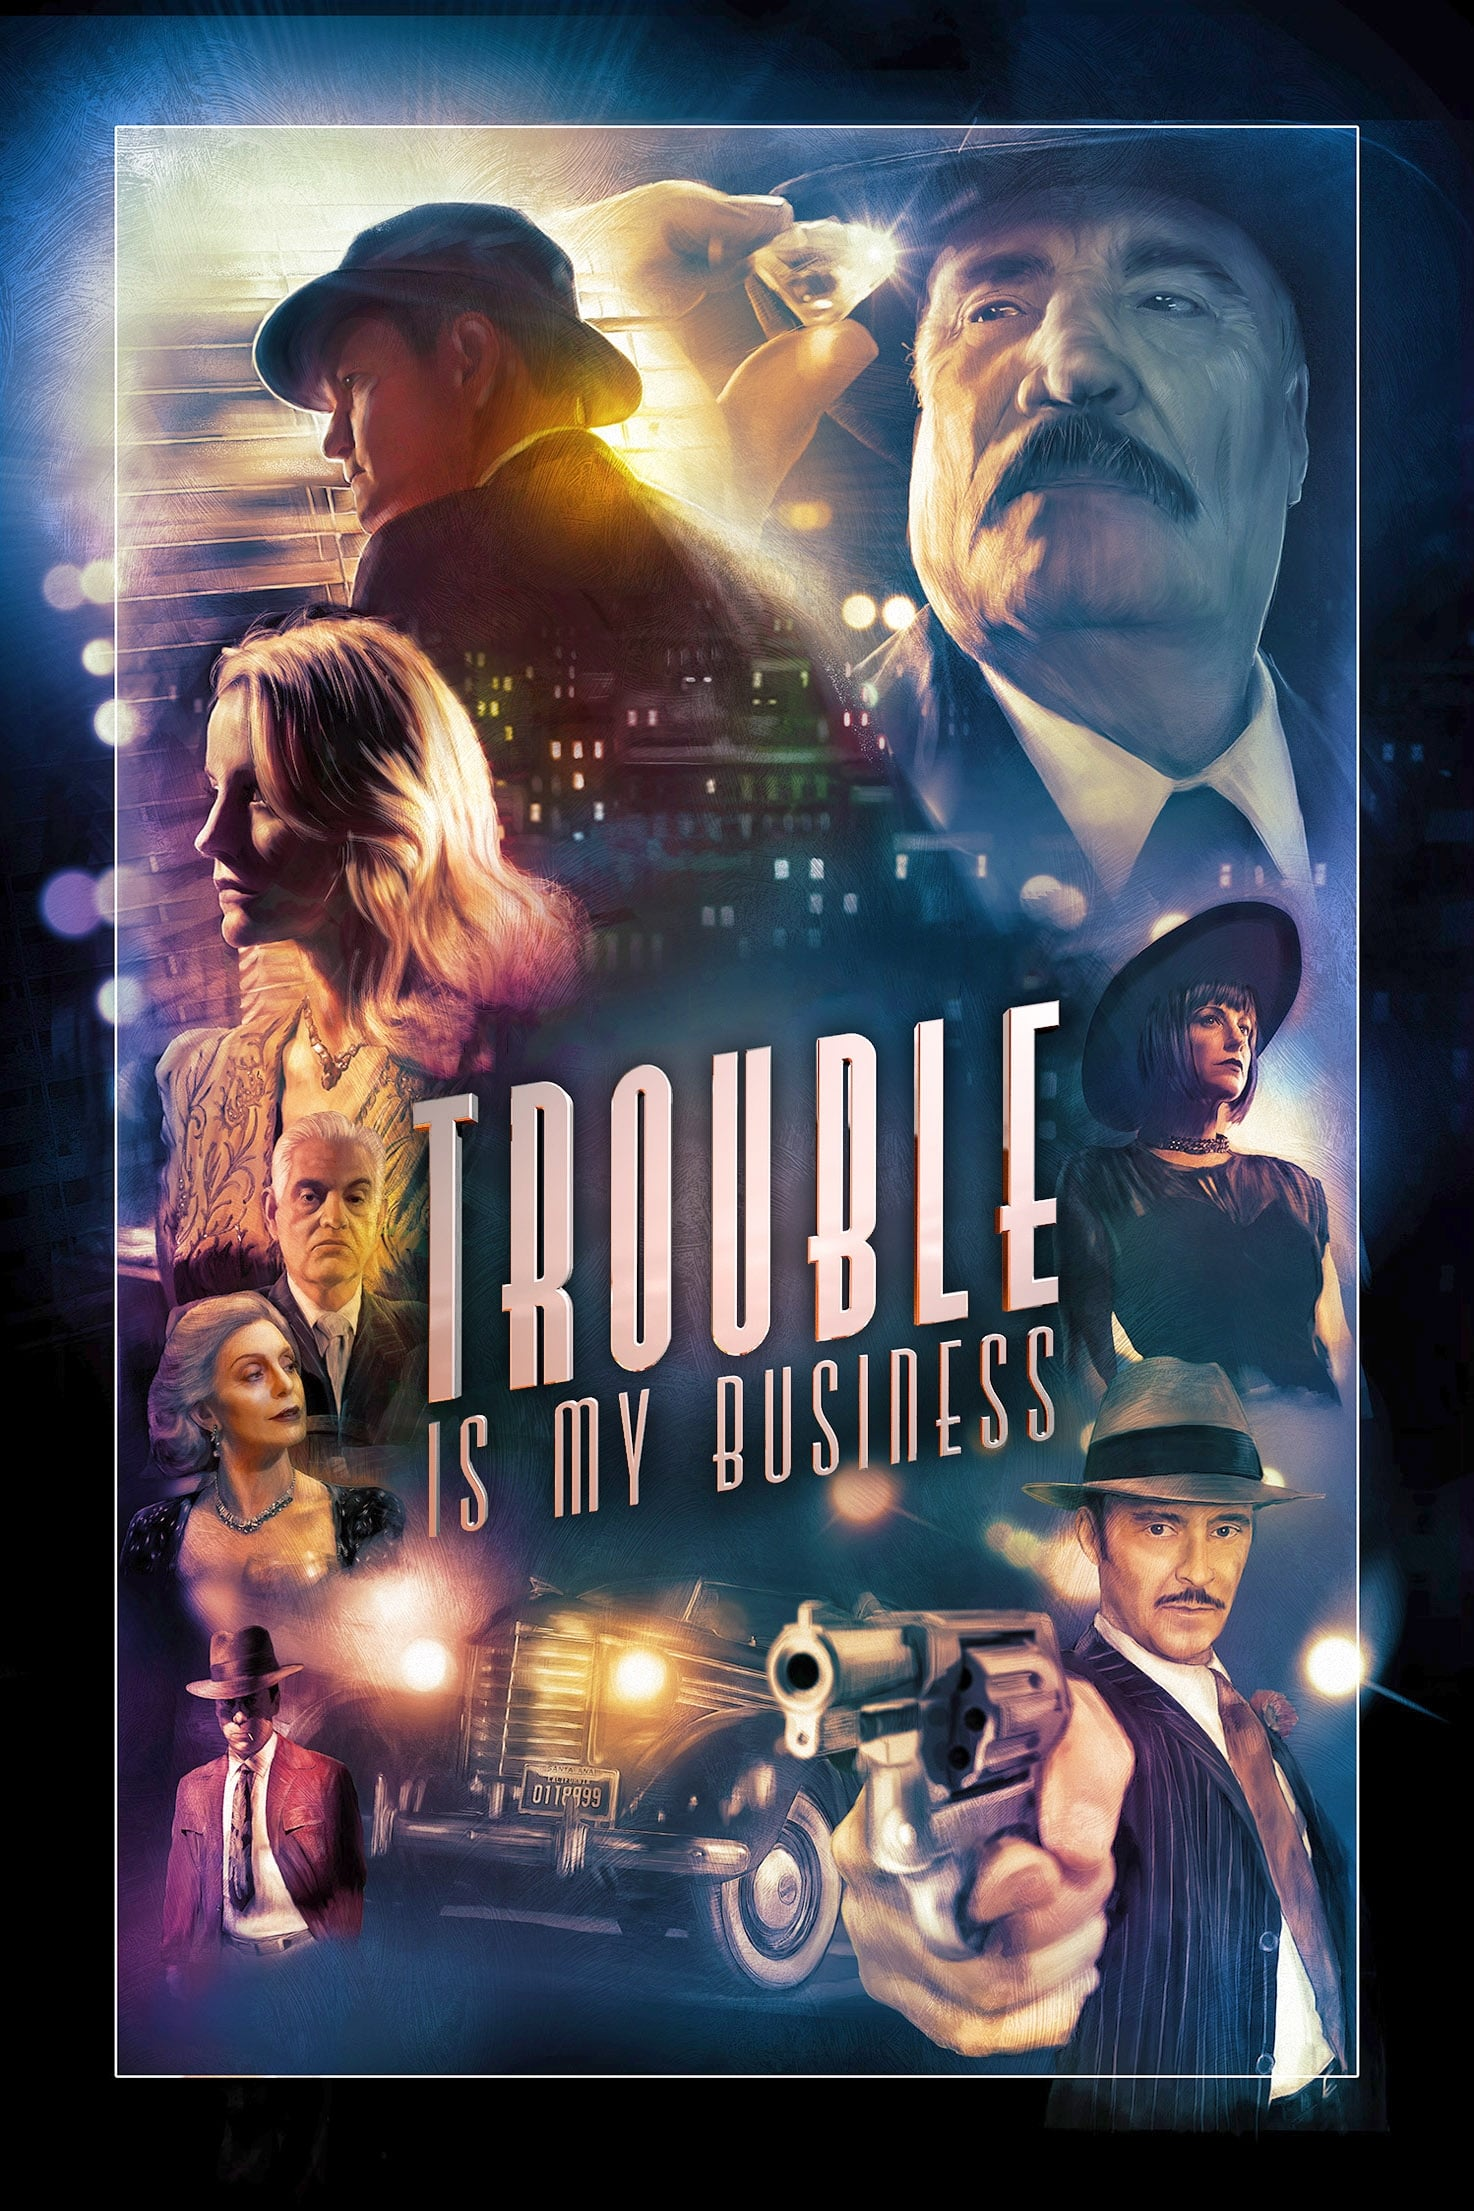 Trouble Is My Business